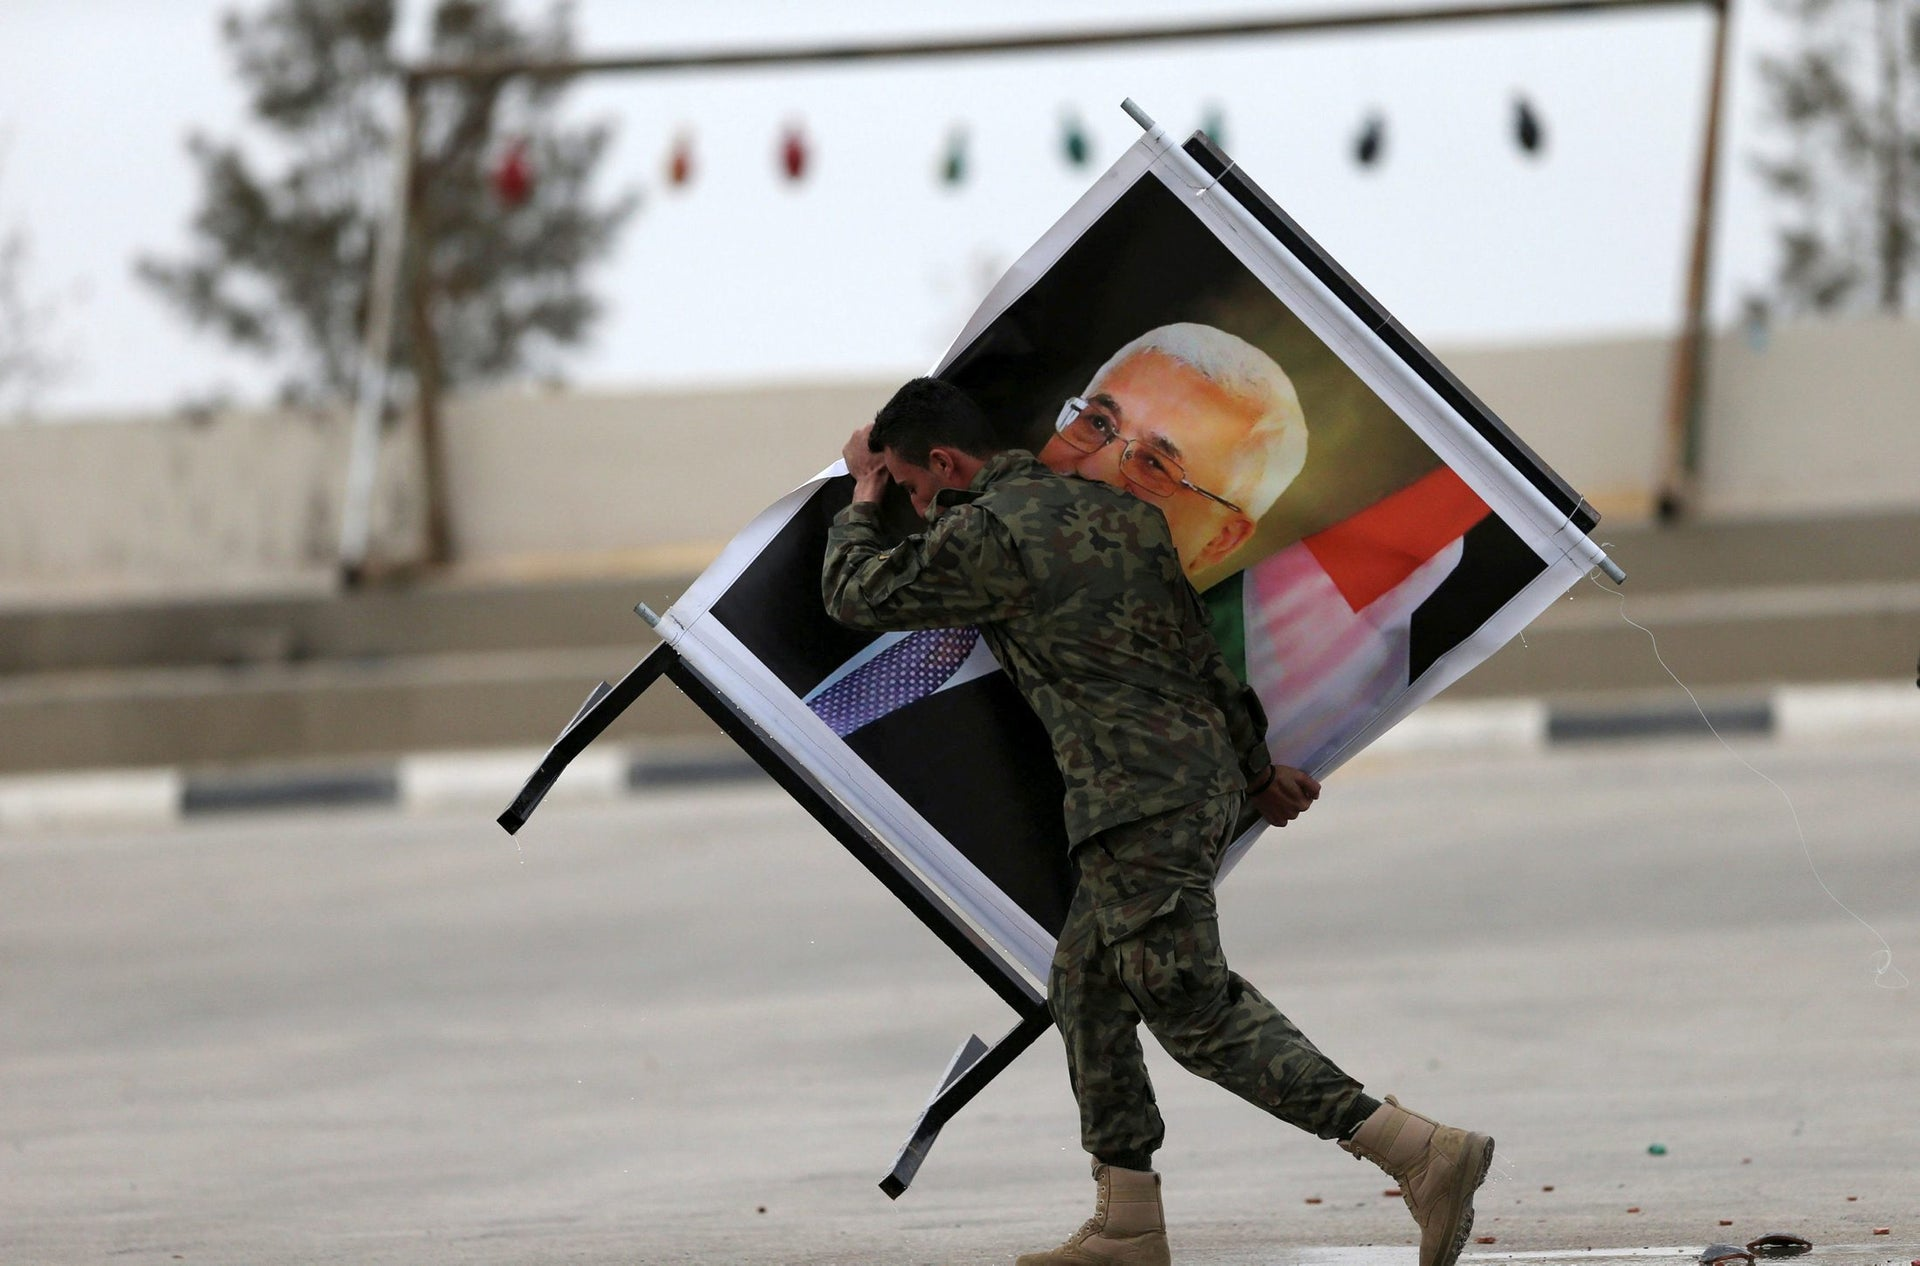 A member of Palestinian National Security Forces carries a picture of Palestinian President Mahmoud Abbas during a graduation ceremony for young Palestinians who participated in a military training program, in the West Bank city of Jericho January 25, 2017.